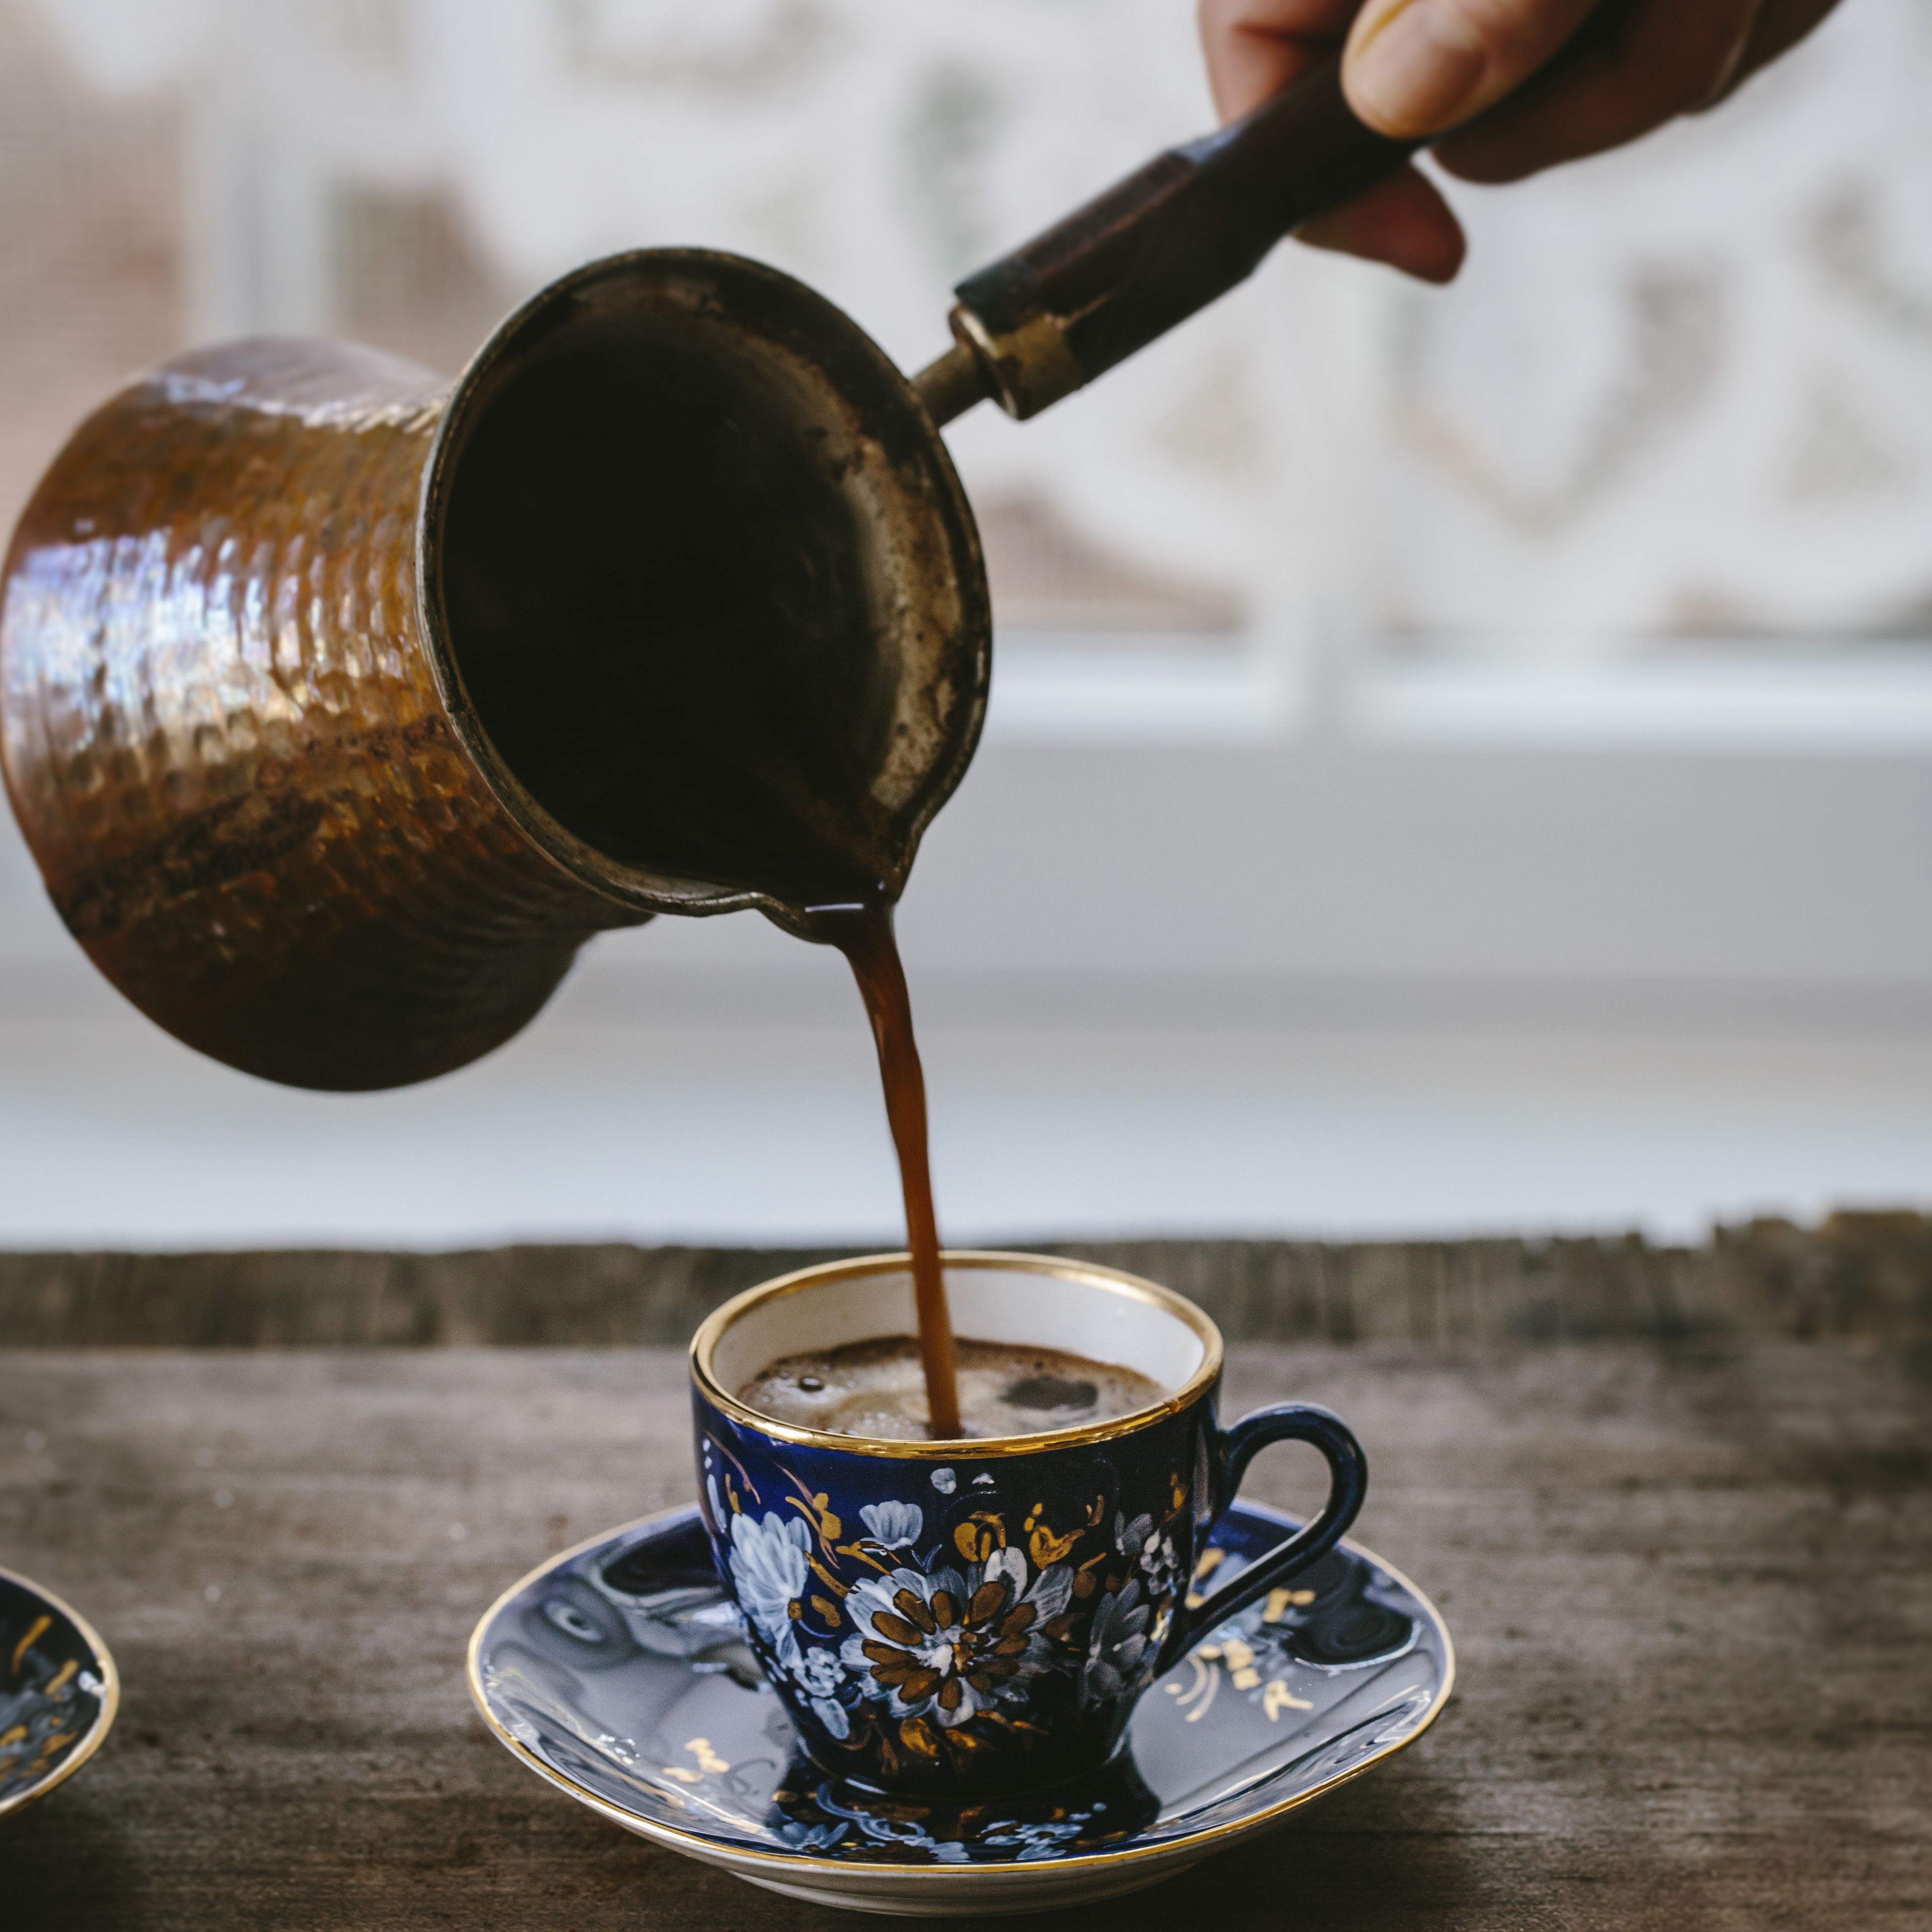 a-woman-is-pouring-turkish-coffee-in-to-a-vintage-turkish-coffee-cup-600103930-5825fe325f9b58d5b129c1a3